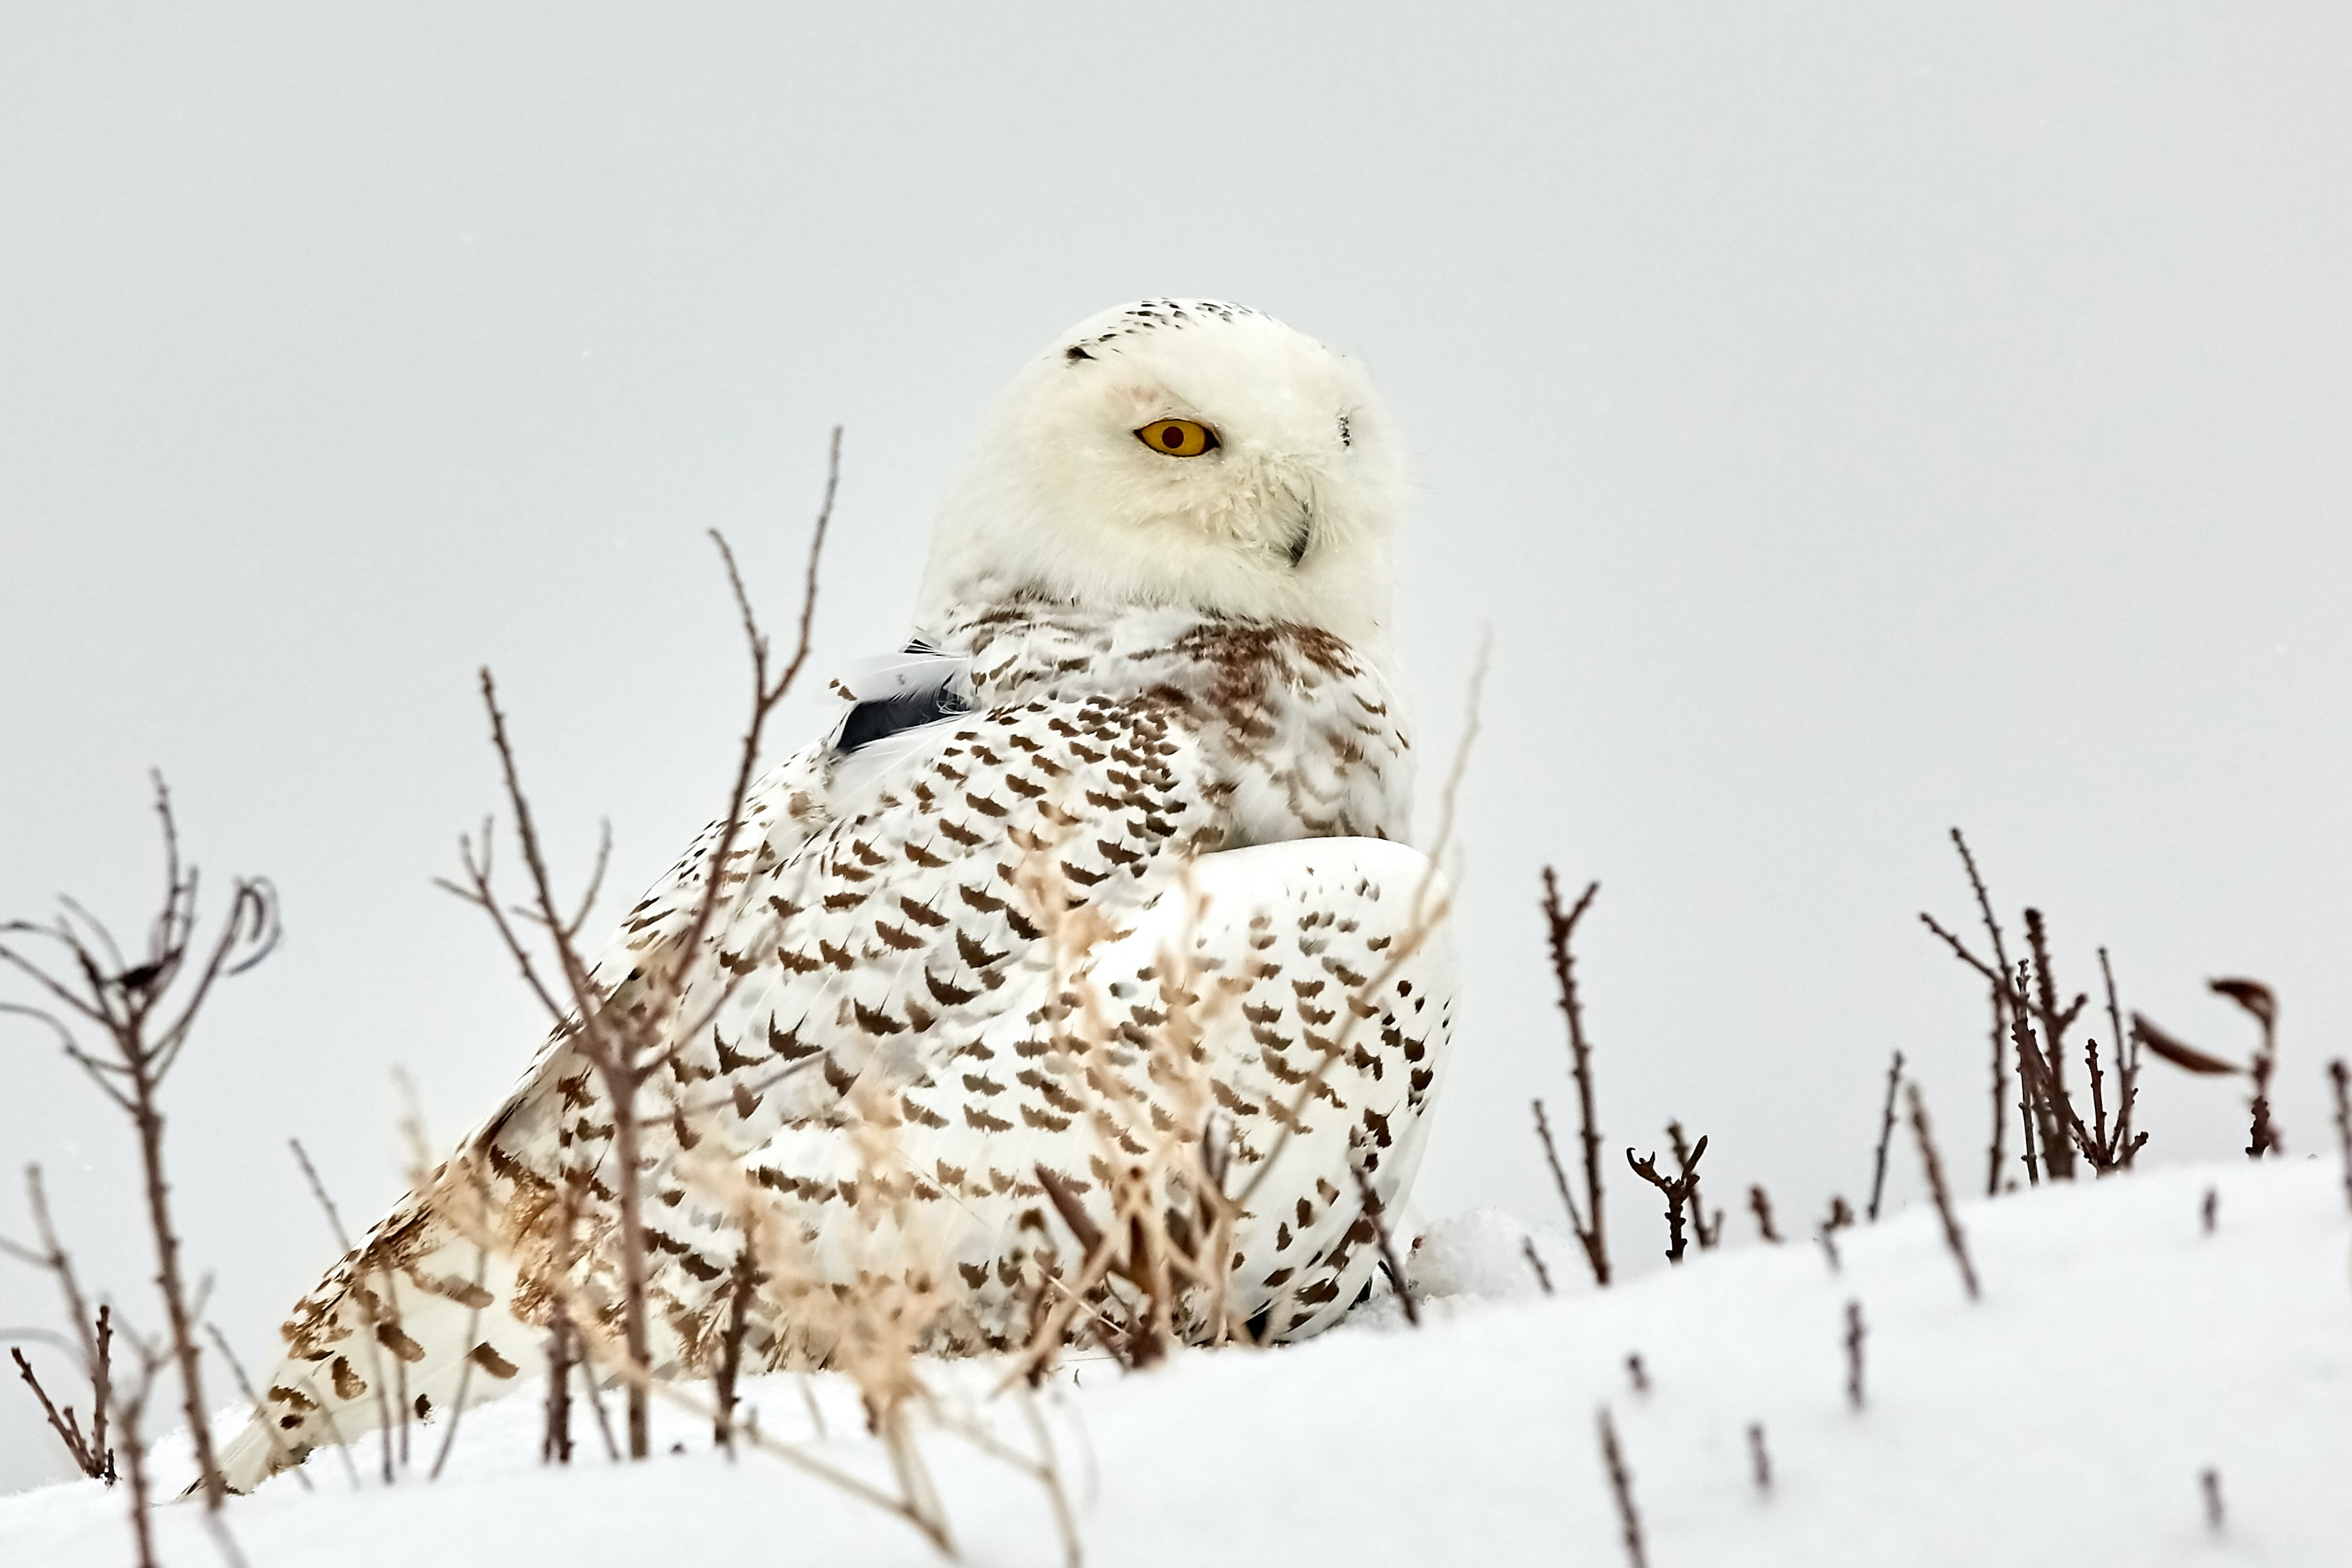 white and brown owl standing on snow